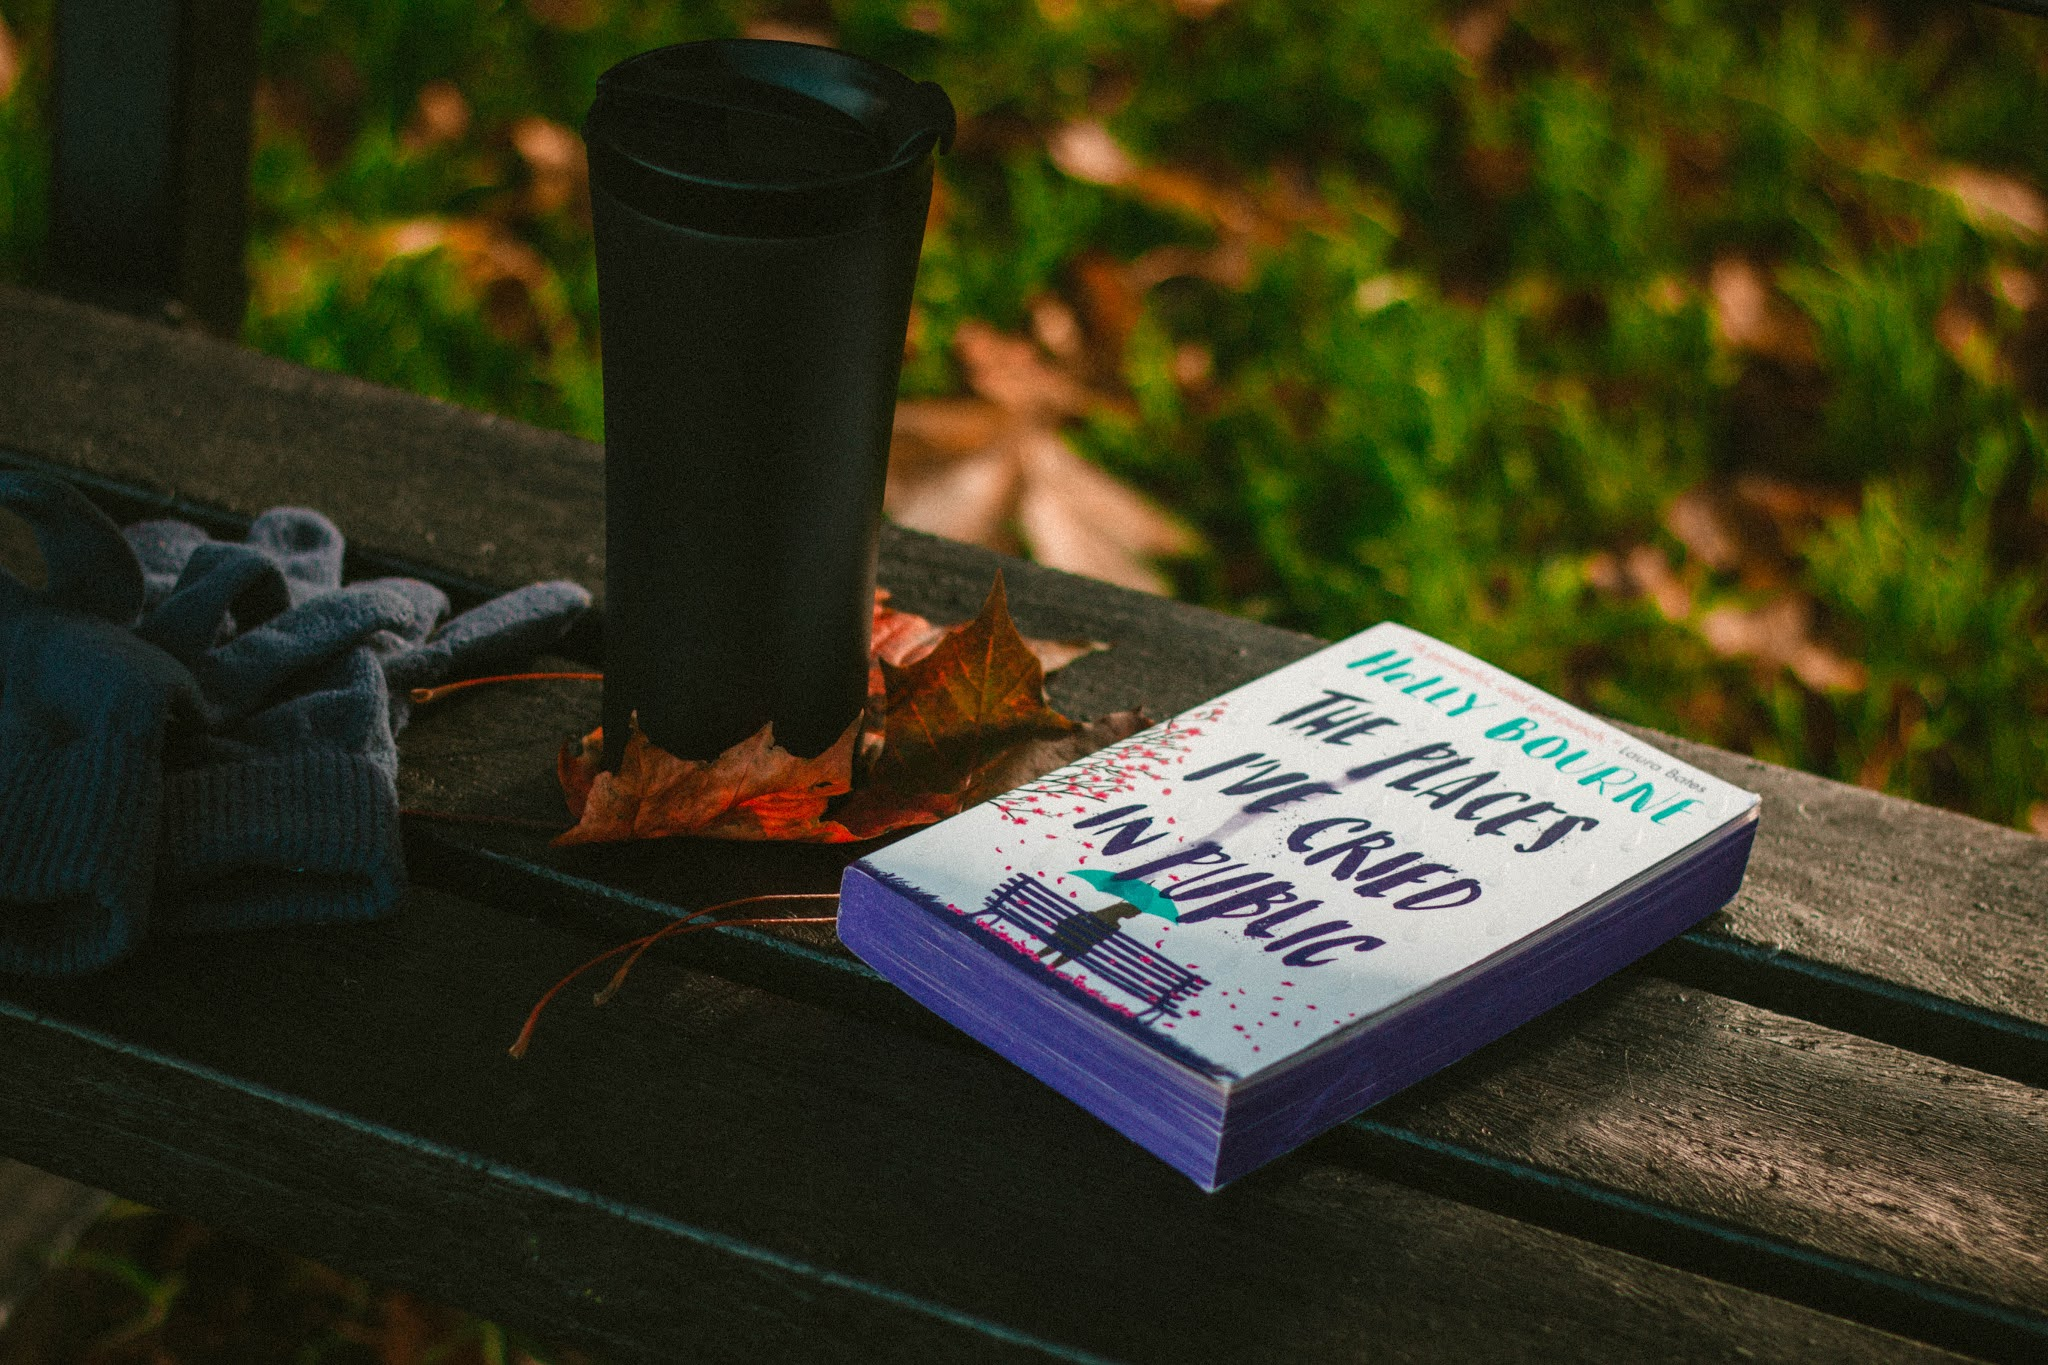 The Places I've Cried in Public by Holly Bourne - on public bench with autumn leaves. YA book review